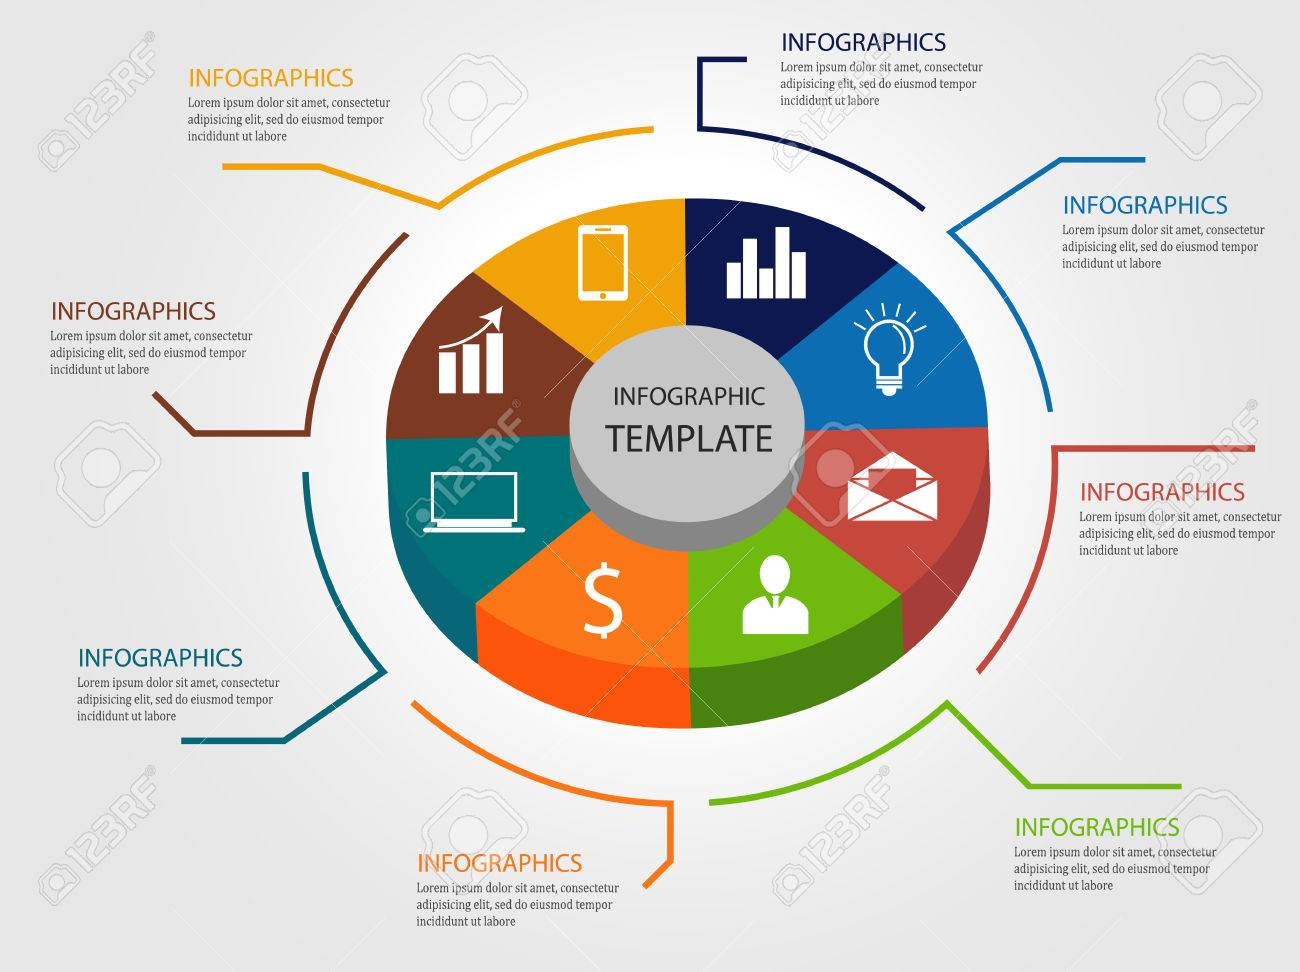 3d Infographic Template Pie Chart Vector Illustration Royalty Free